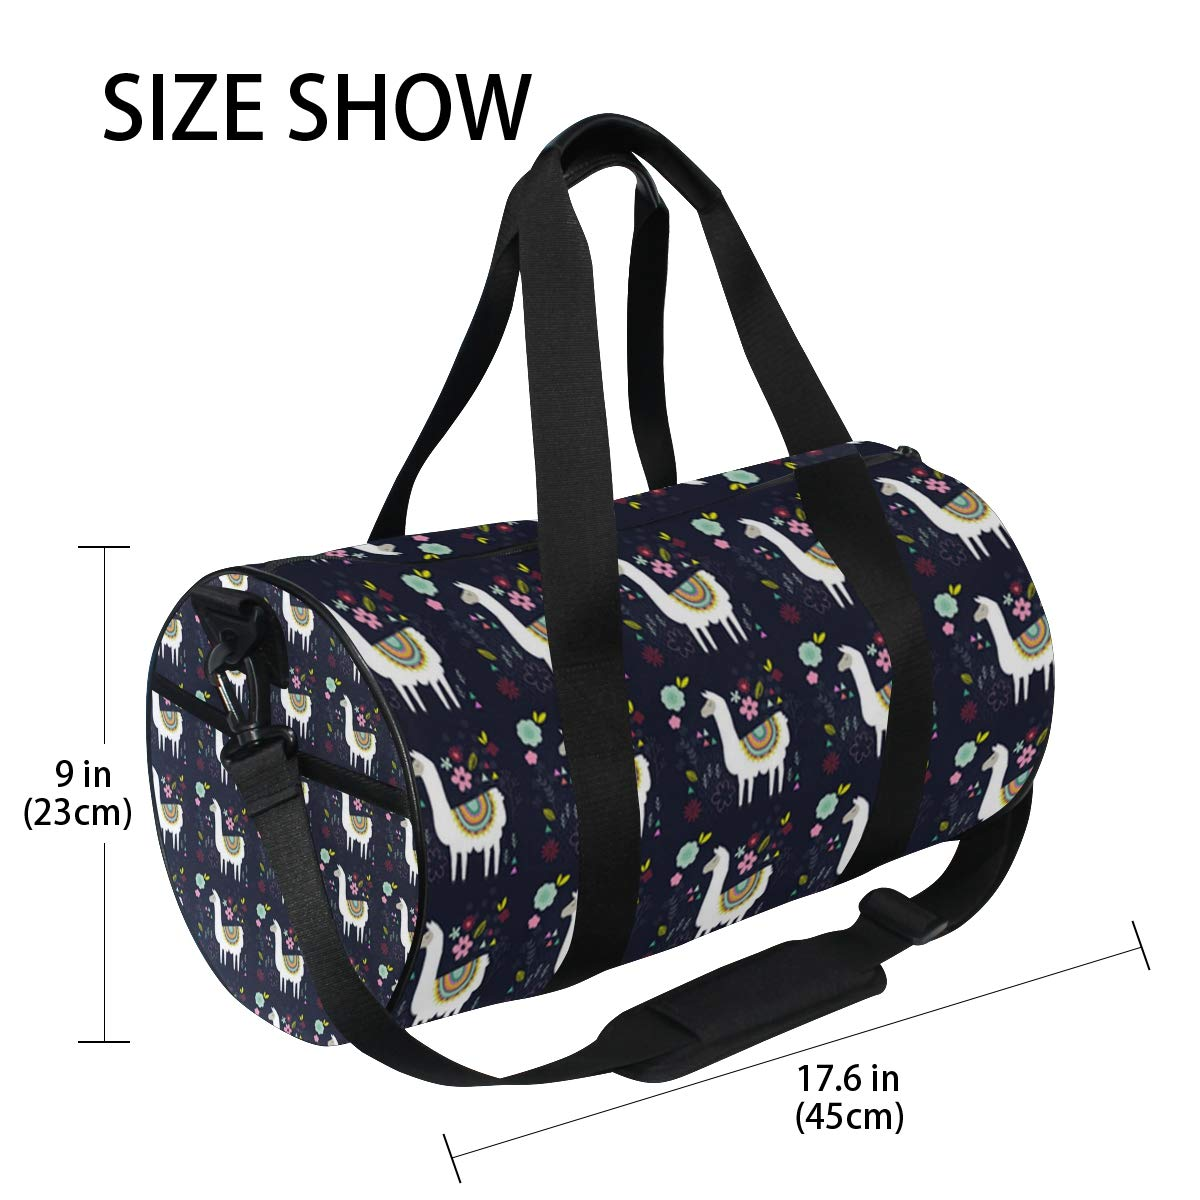 Sports Gym Duffel Barrel Bag Llama Garden Floral Travel Luggage Handbag for Men Women